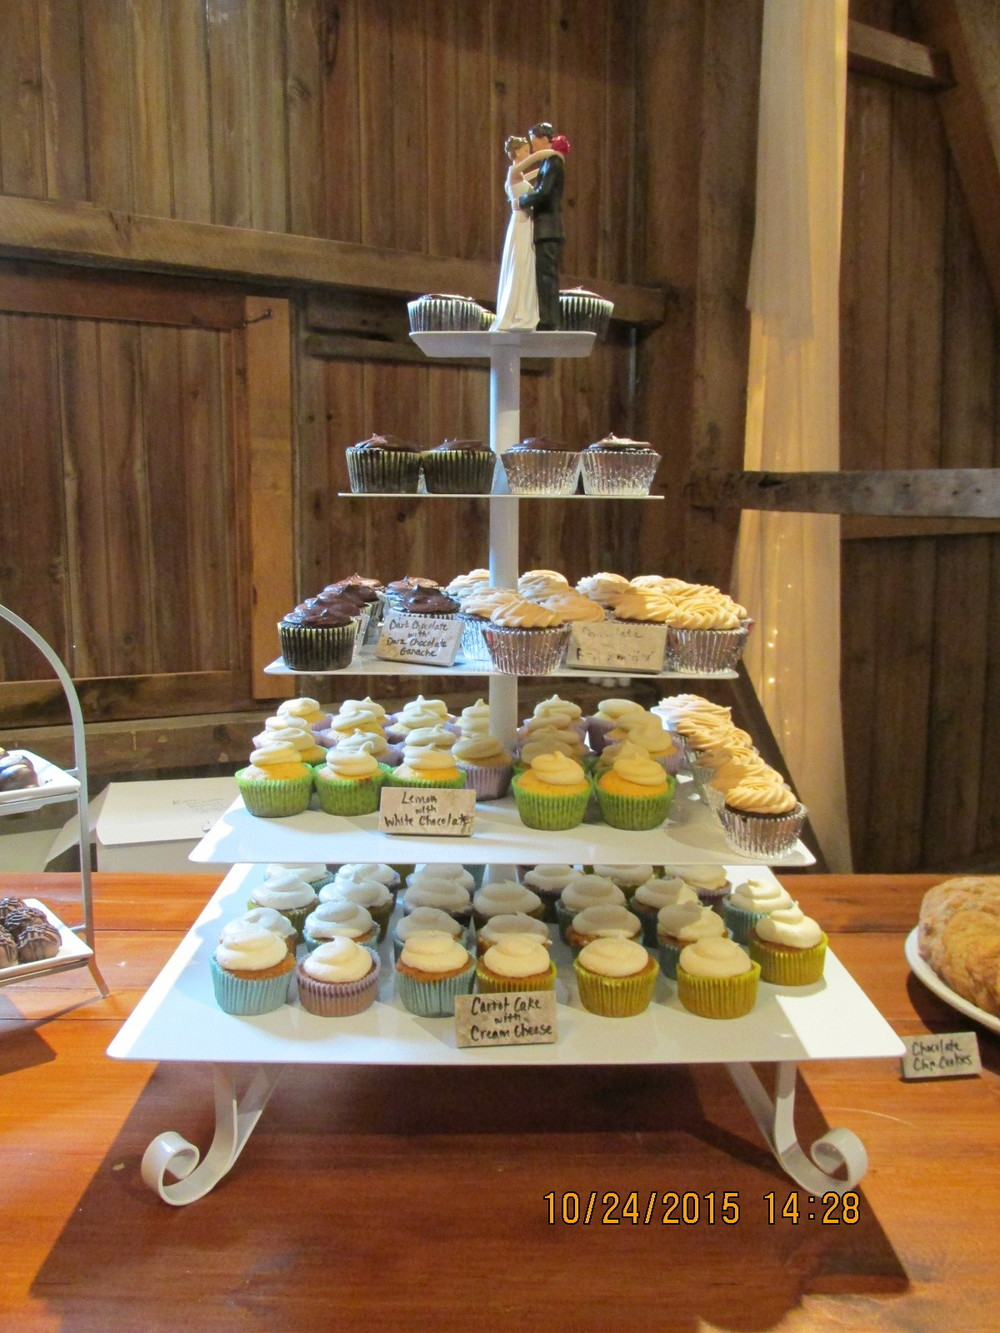 Five tiered cupcake stand